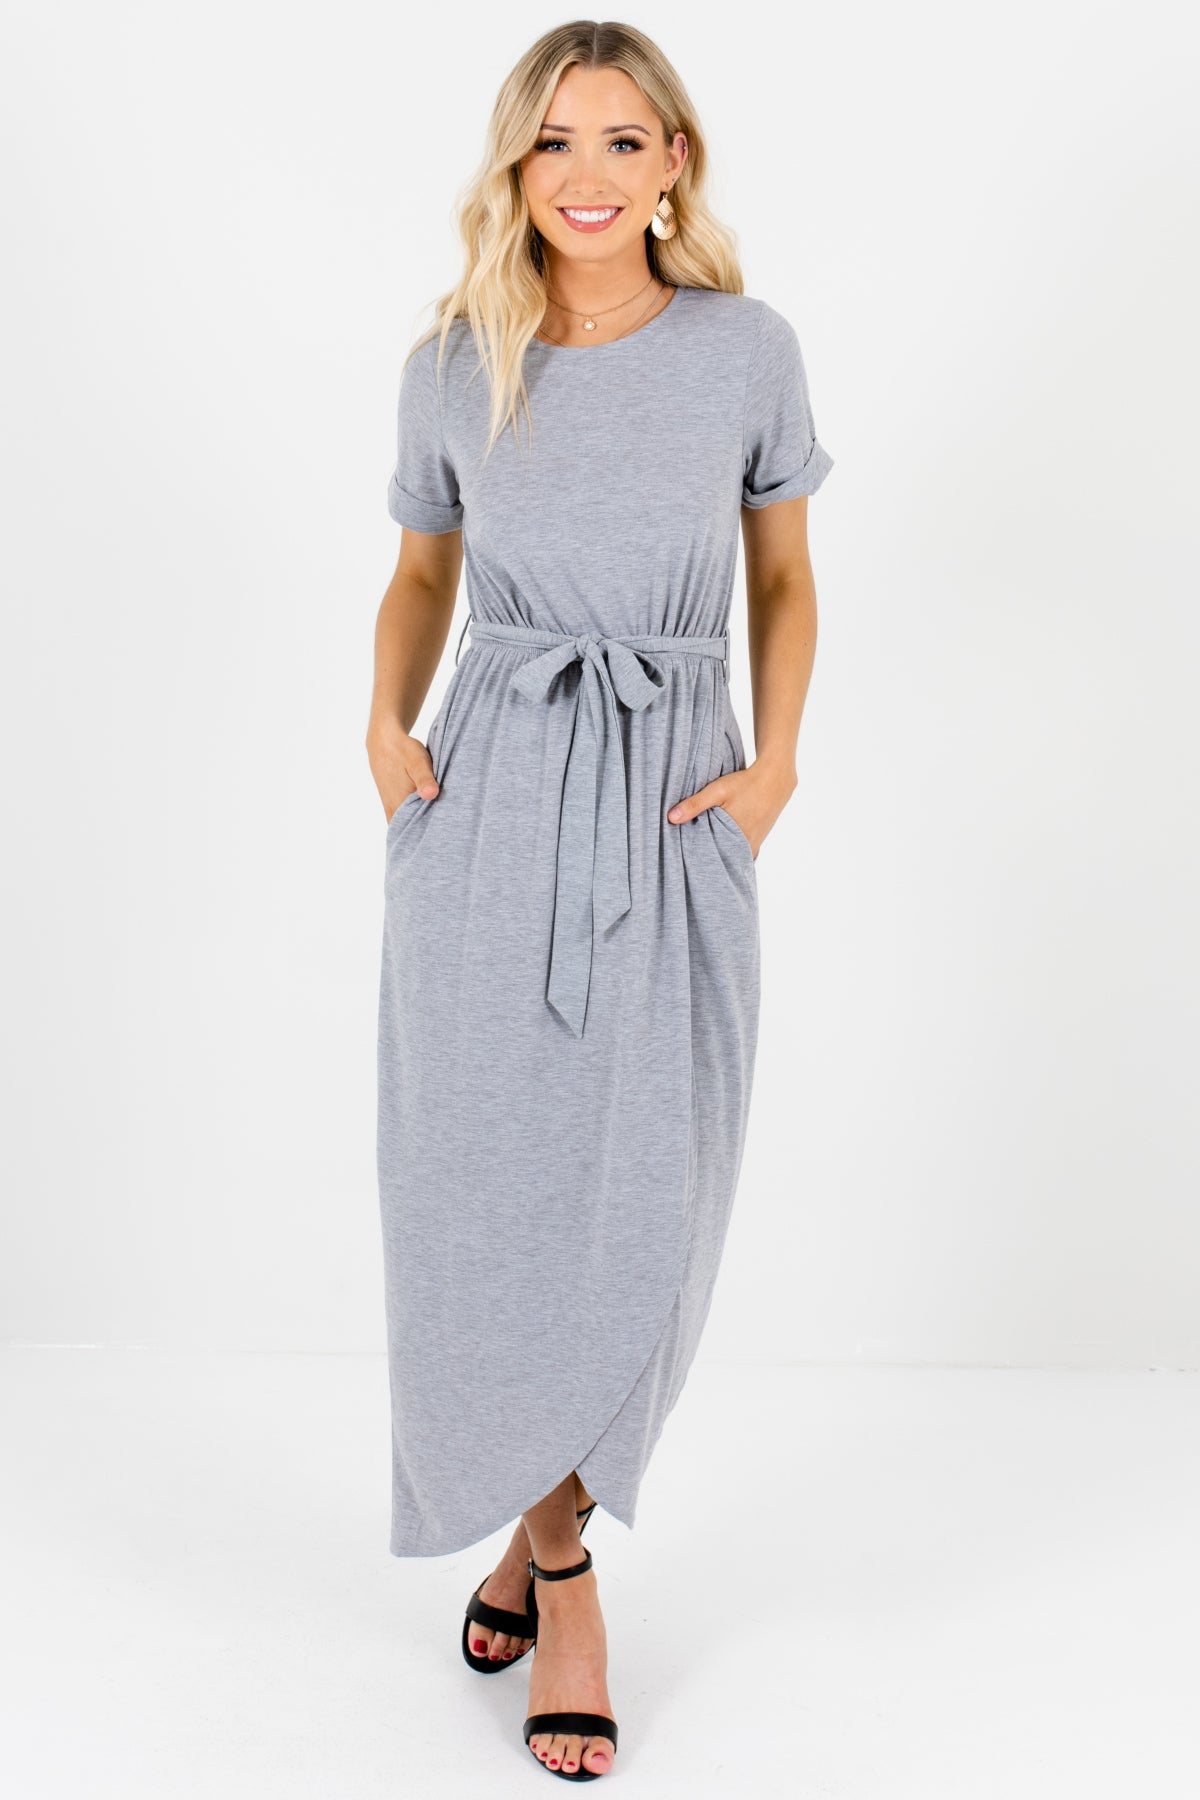 Heather Gray Comfy Elastic Waistband Tie Front Faux Wrap Overlay Dress